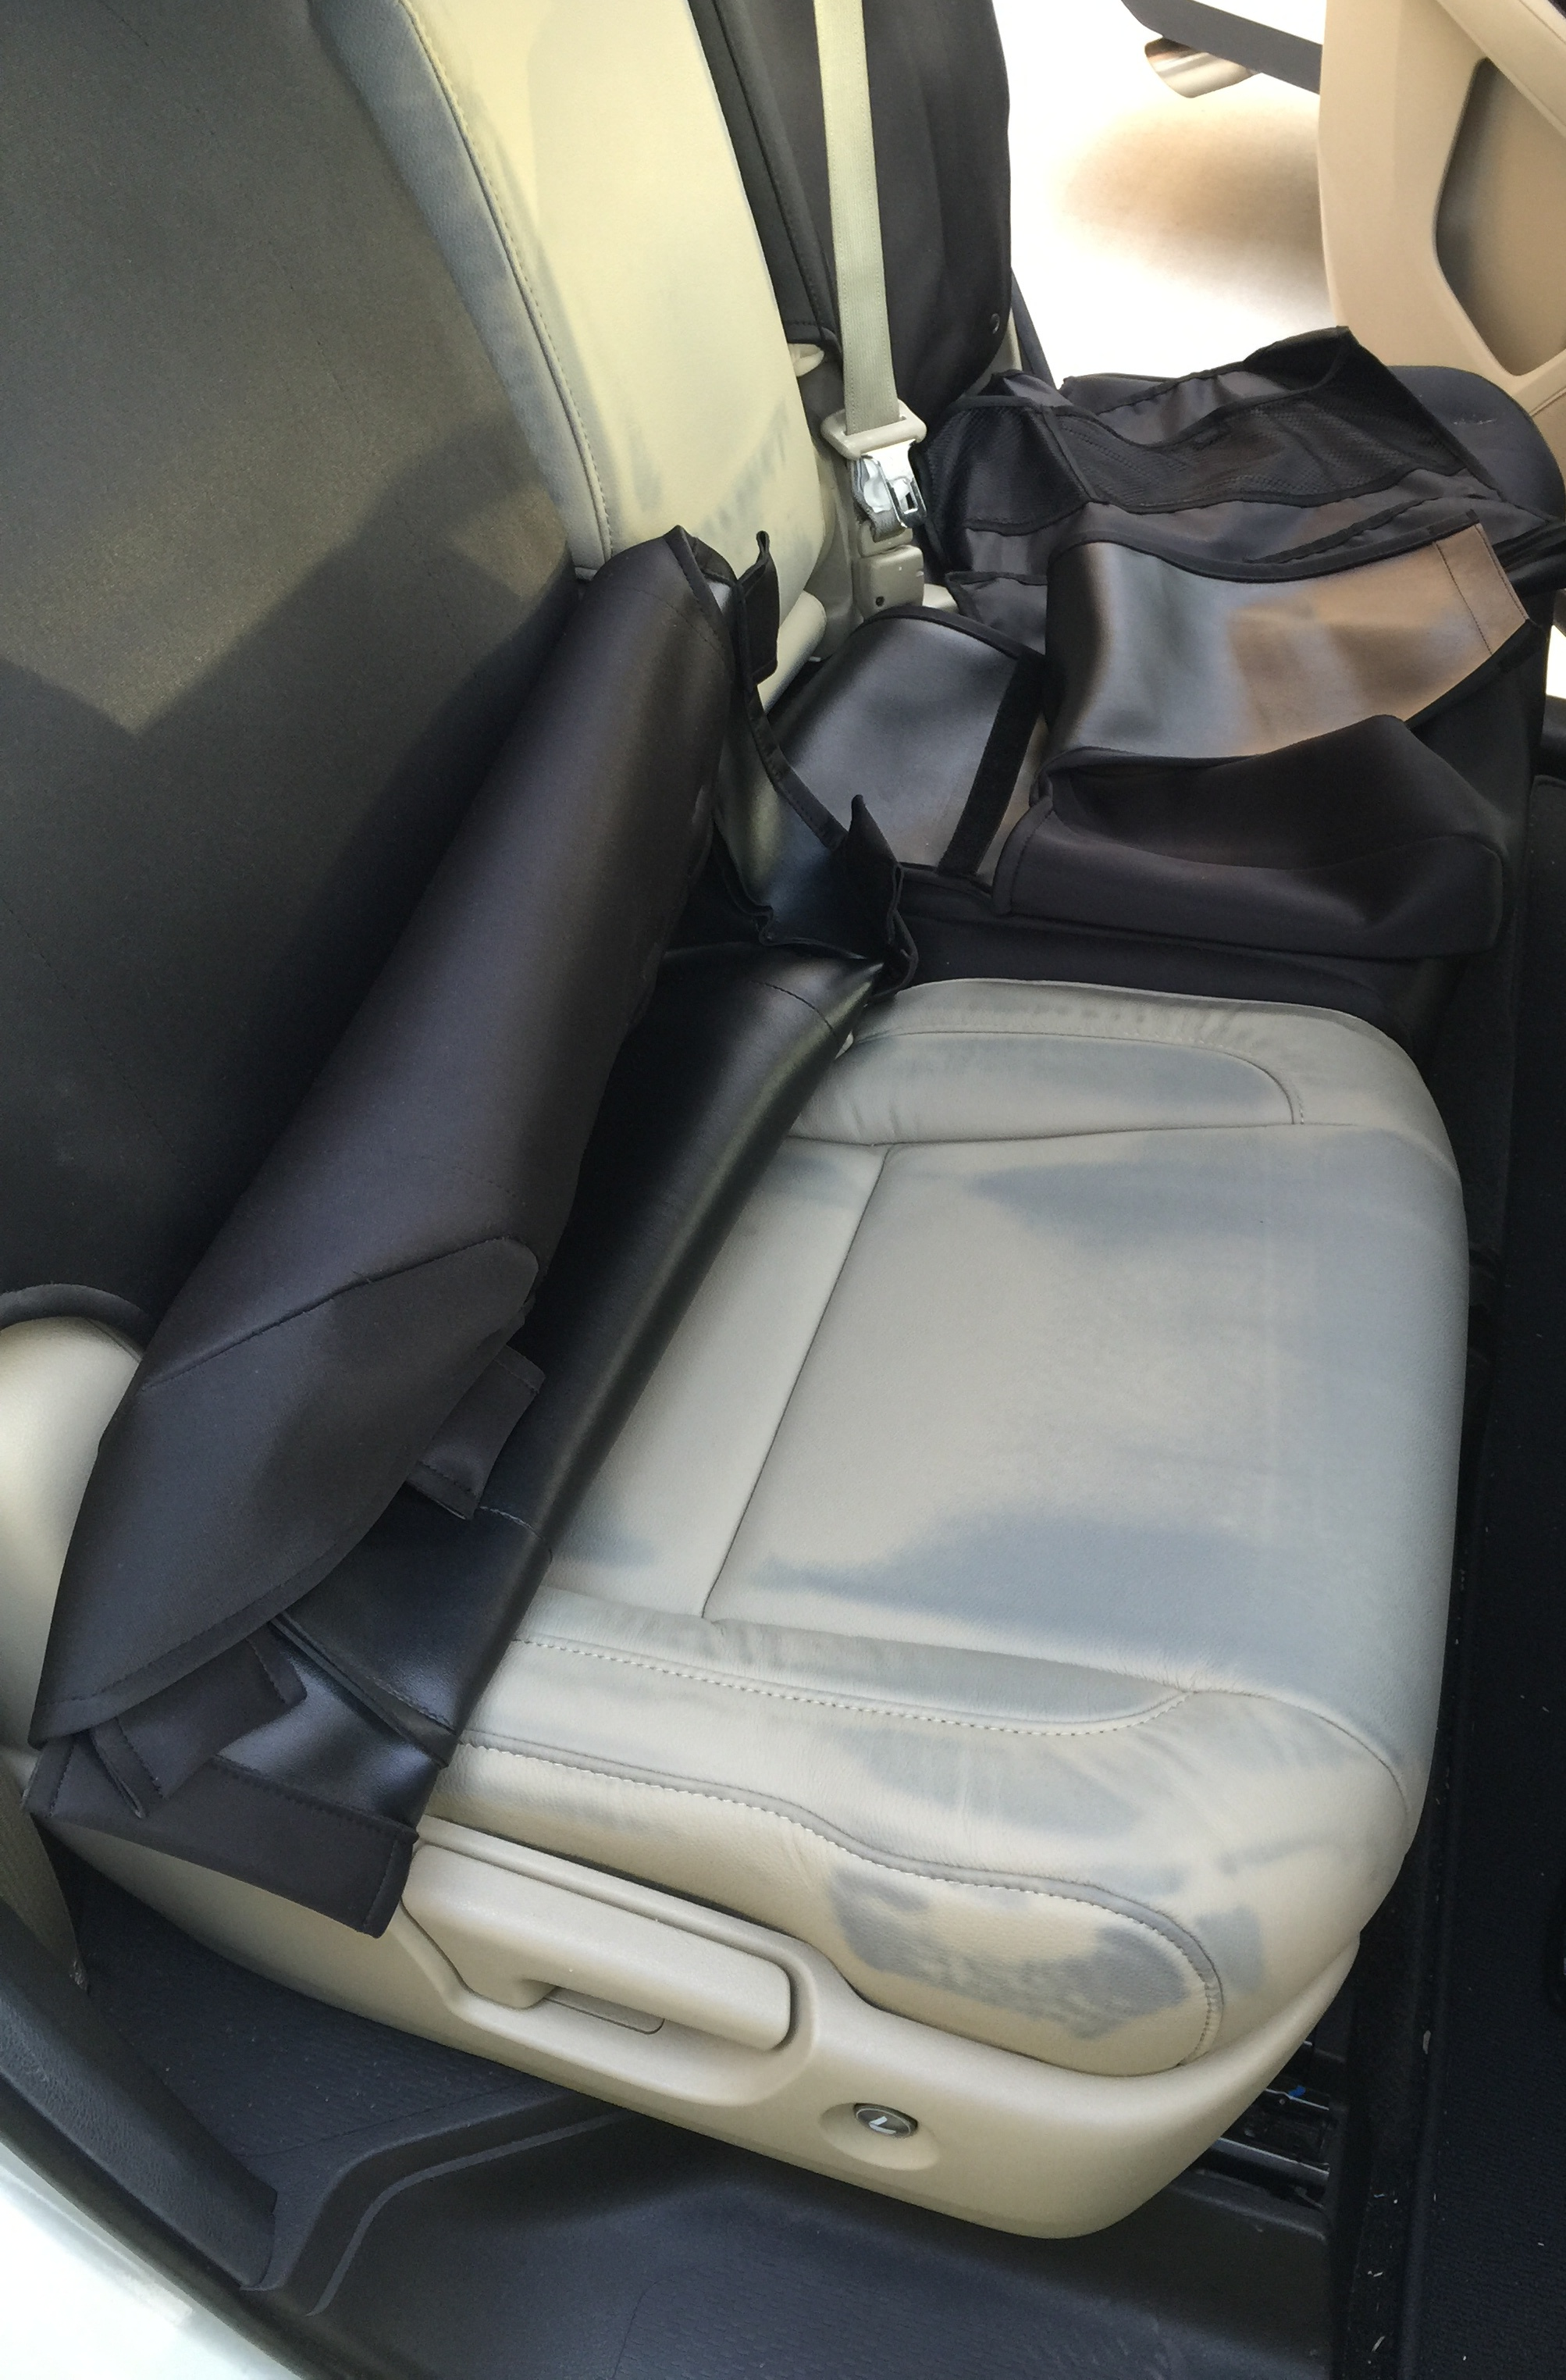 Leather Seats Ruined By OEM Seat Cover Acura MDX Forum Acura - Acura mdxers